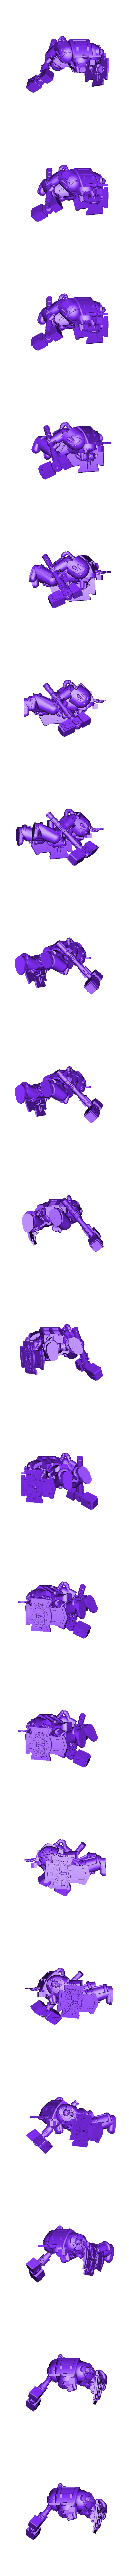 SpaceShipEnterTroop_5_Hammer_1_SS_1.stl Download free STL file Bloody Heavily Armoured Space Soldiers • 3D print object, PhysUdo